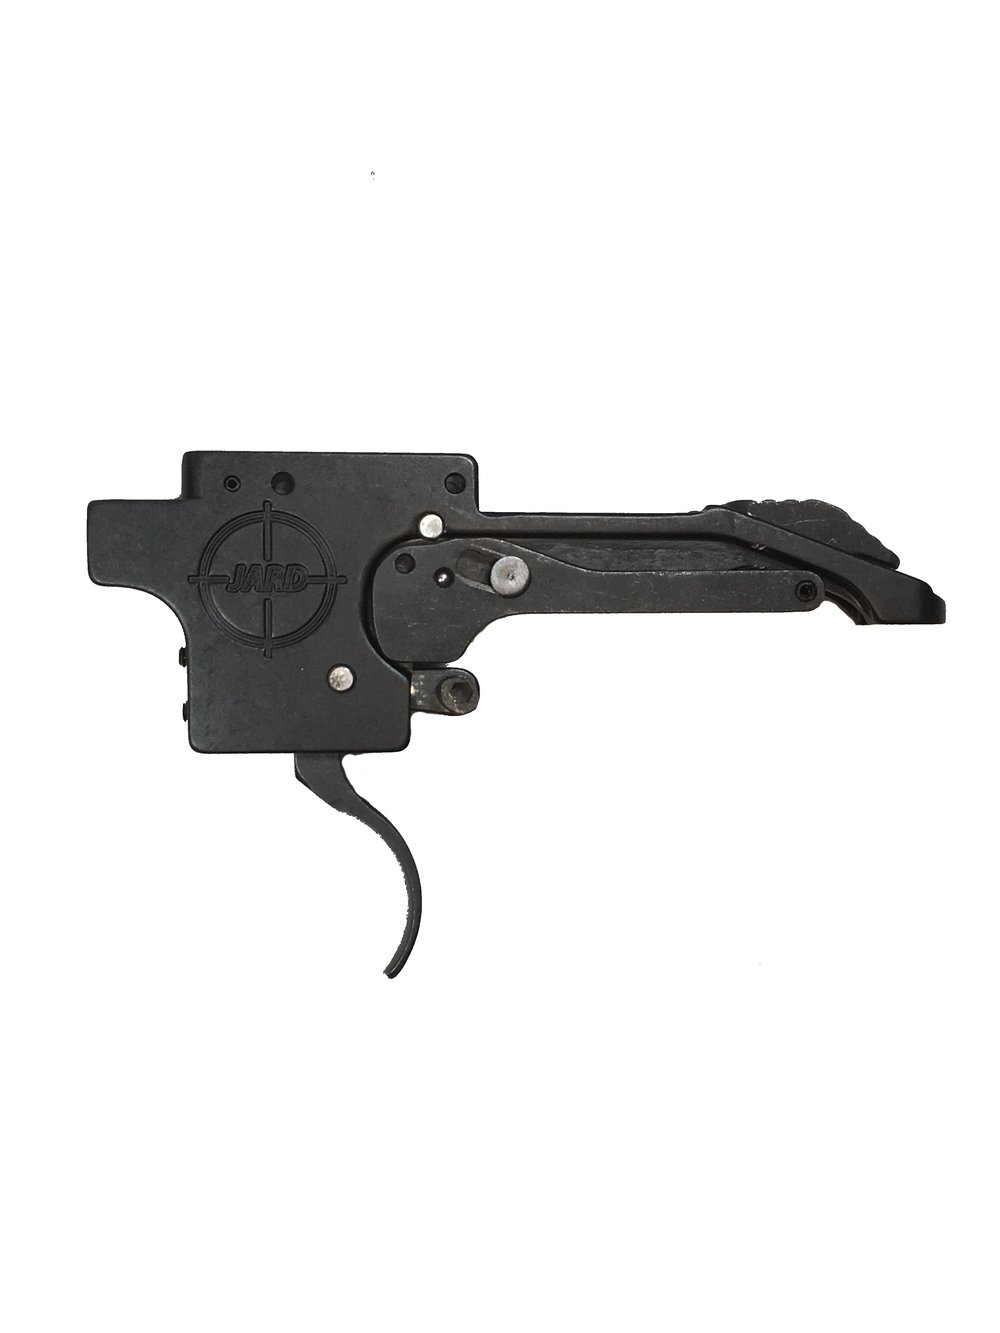 Pictured: Center Fire Model